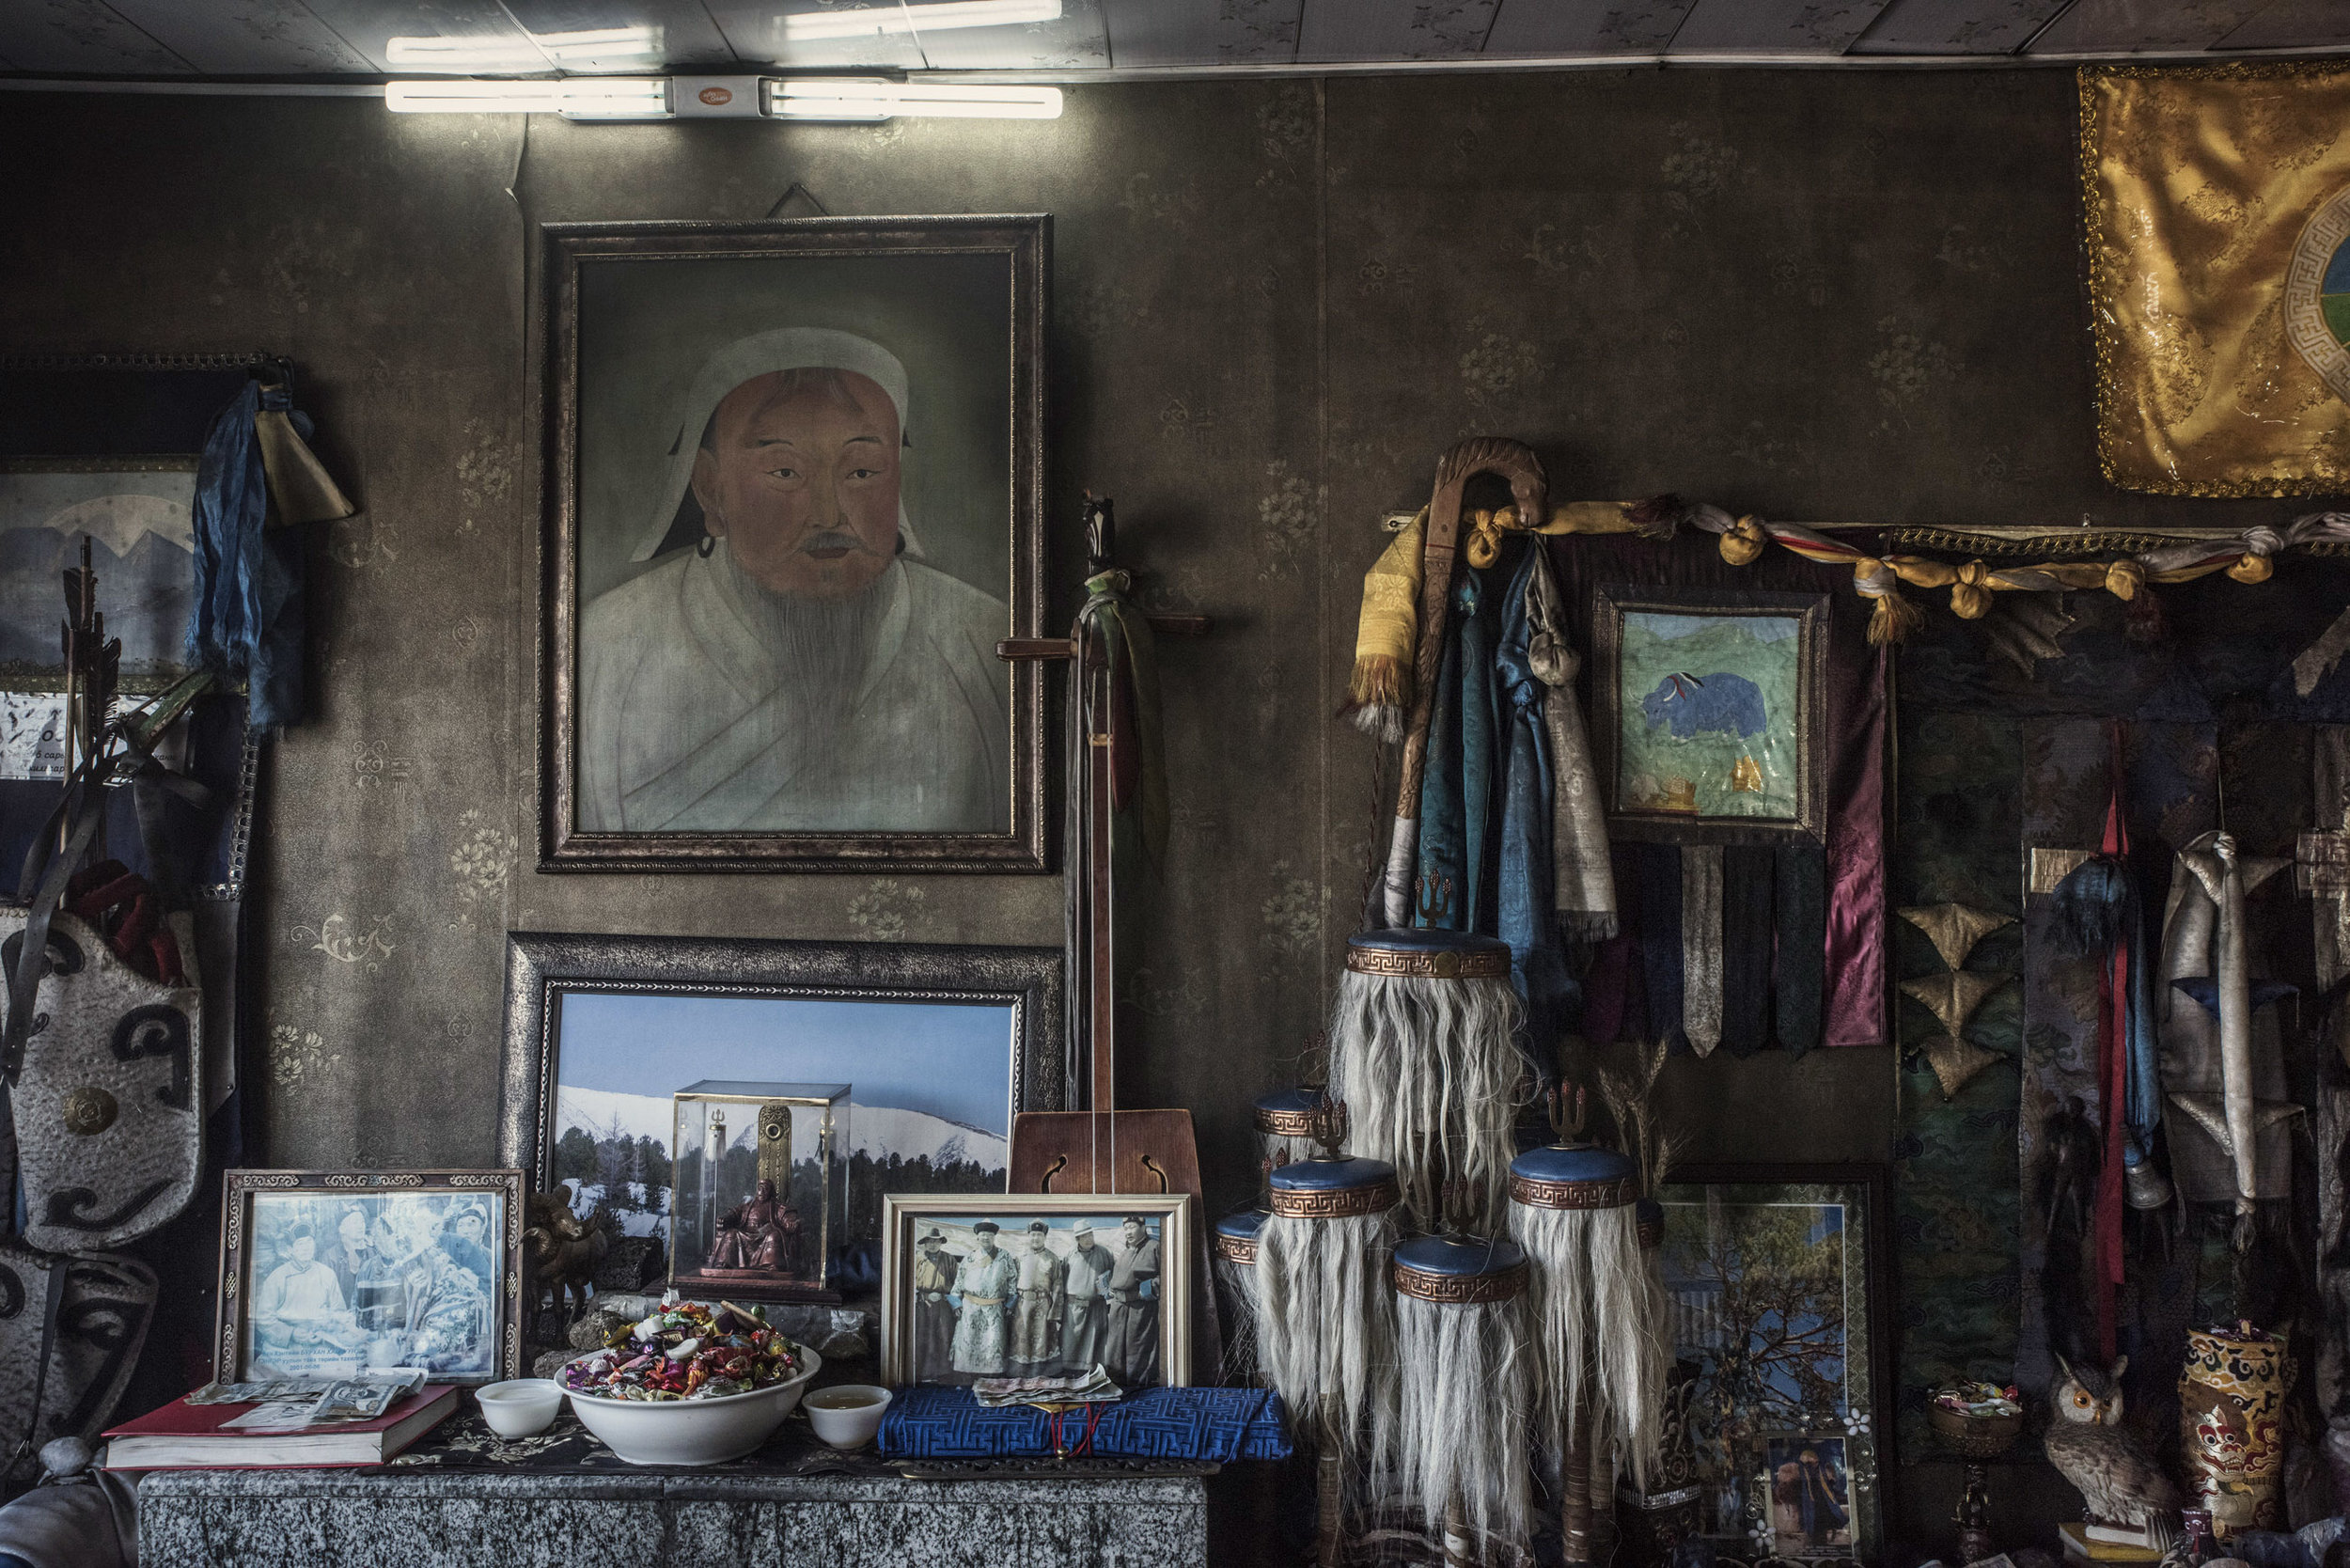 An altar in the prayer room of master shaman Byambadorj with a portrait of Genghis Khan on the wall. At the right of the altar stands a frame picture of Byambadorj with former Mongolia president Nambar Enkhbayar (3rd from left) and Badmaanyambuu Bat-Erdene (first from right) Mongolia former National wrestling champion and current parliament member. With Shamanism increasing popularity in Mongolia, it mixes with politics: many members of parliaments practice shamanism, and even some being shaman themselves.   Genghis Khan portraits are ubiquitous in Mongolian homes including  Shamans' practice rooms. The cult of the Mongolian ruler is part of local shamanist belief. Genghis Khan practiced shamanism himself and he is considered the master of all shamans. His spirit is frequently called upon during shamanic ceremonies.